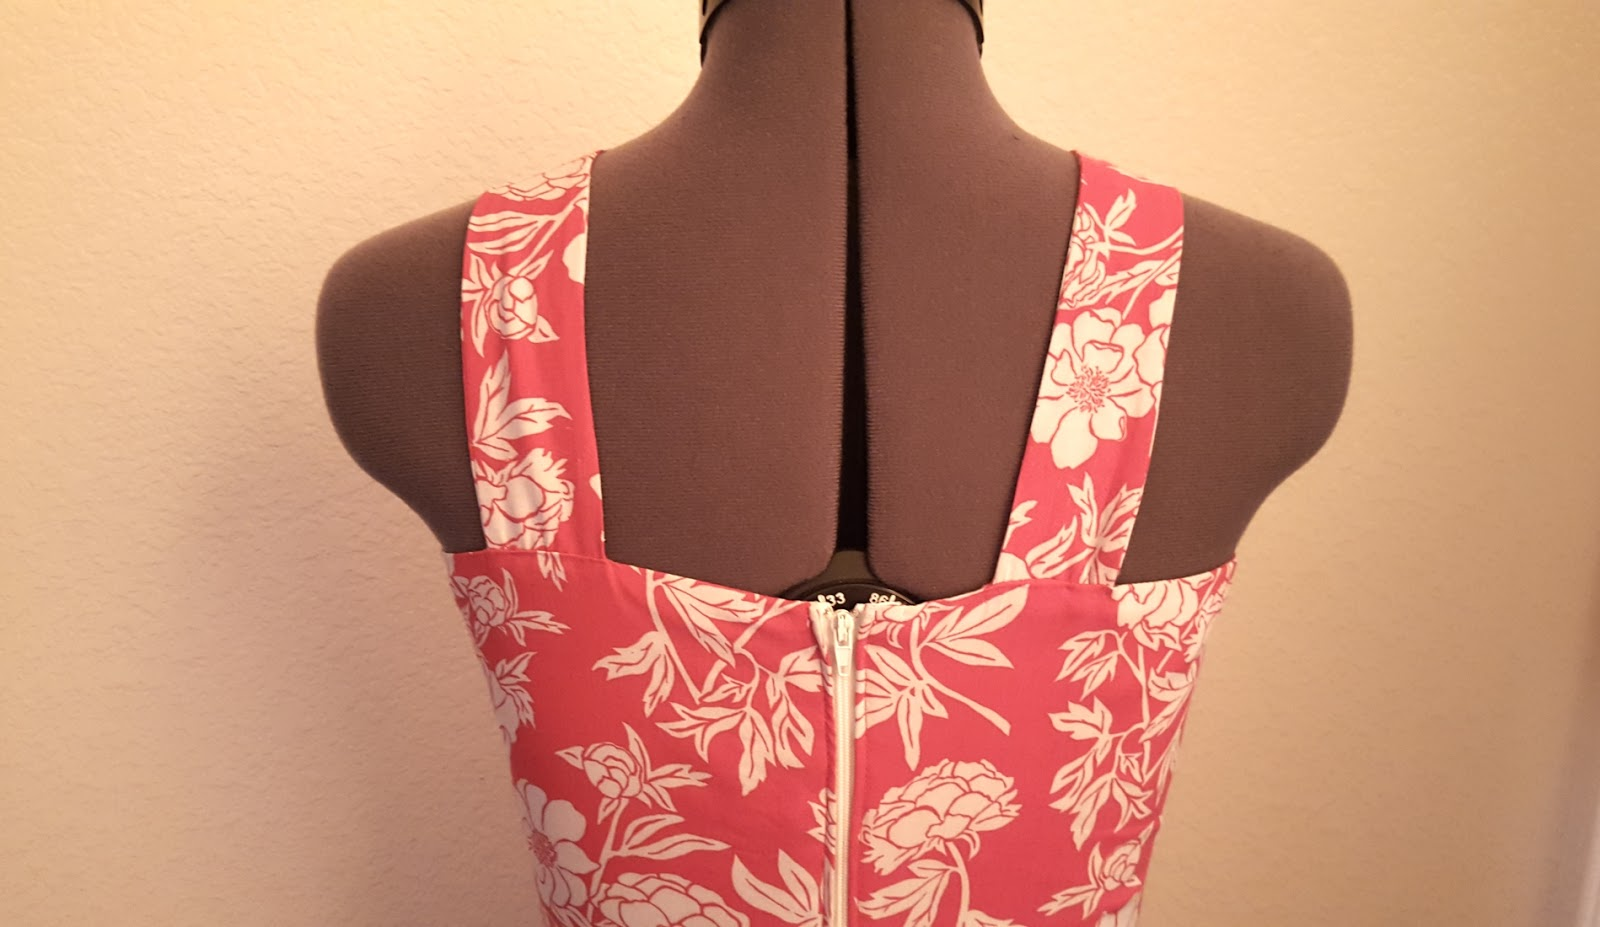 Sewing lonsdale dress with modified back straps instead of bow